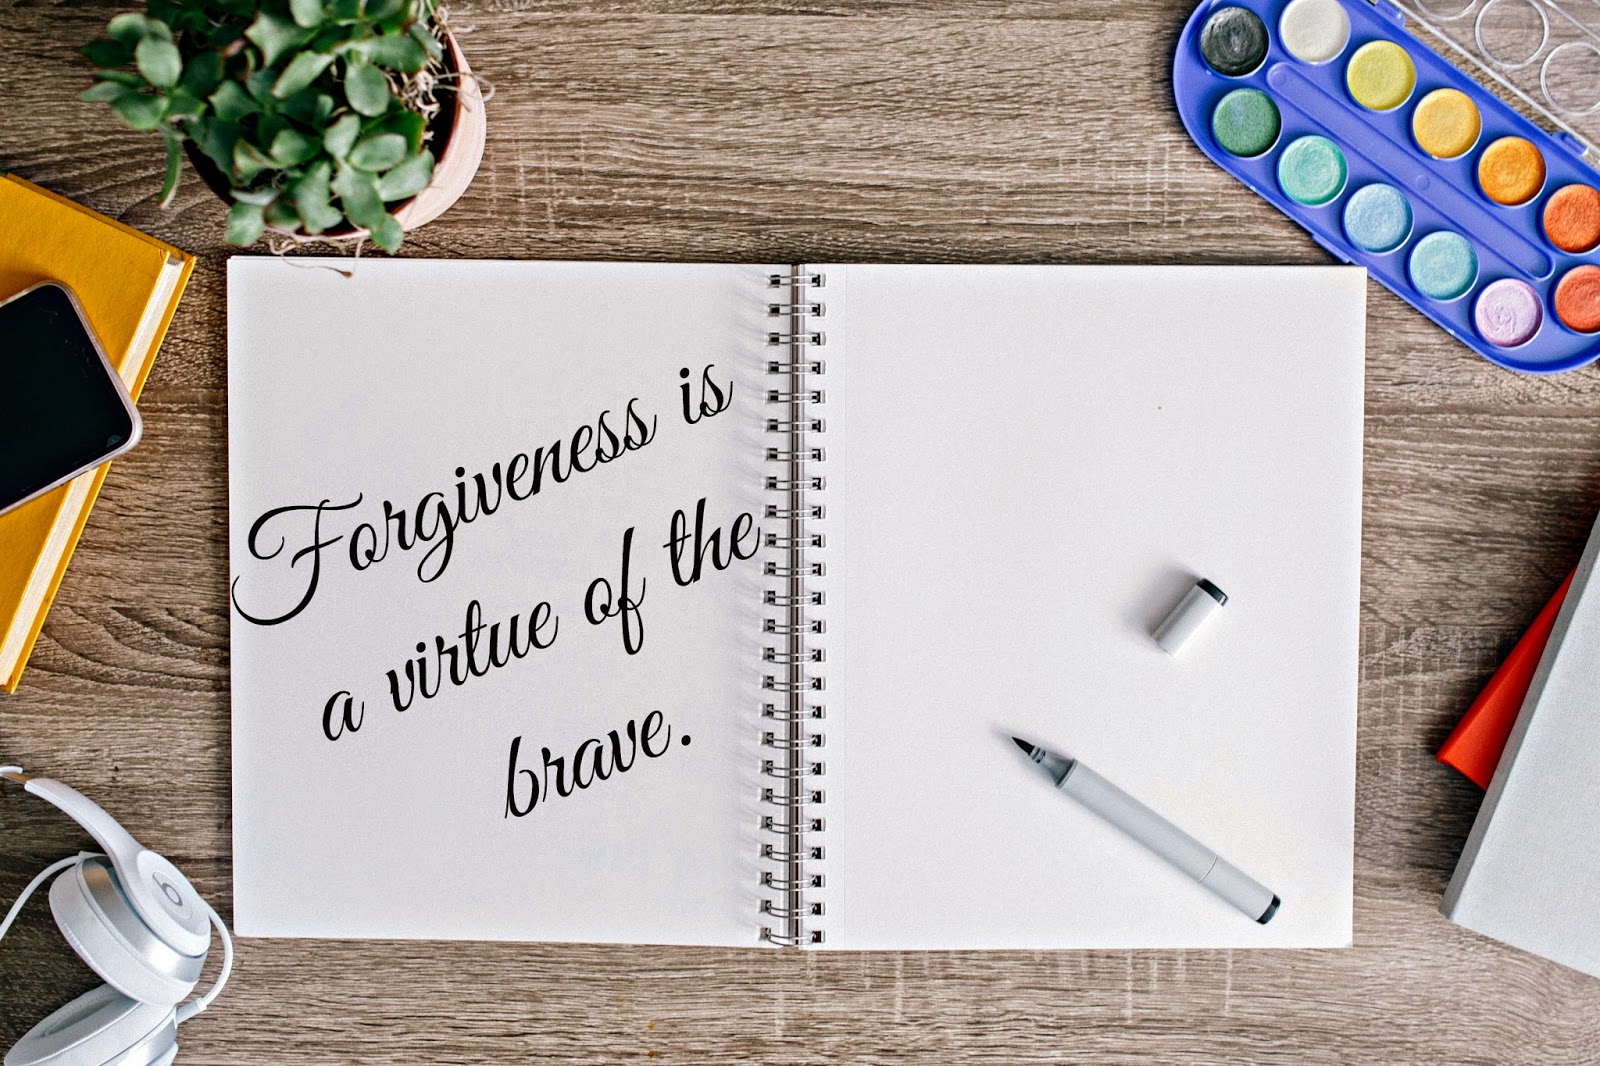 Forgiveness is a virtue of the brave